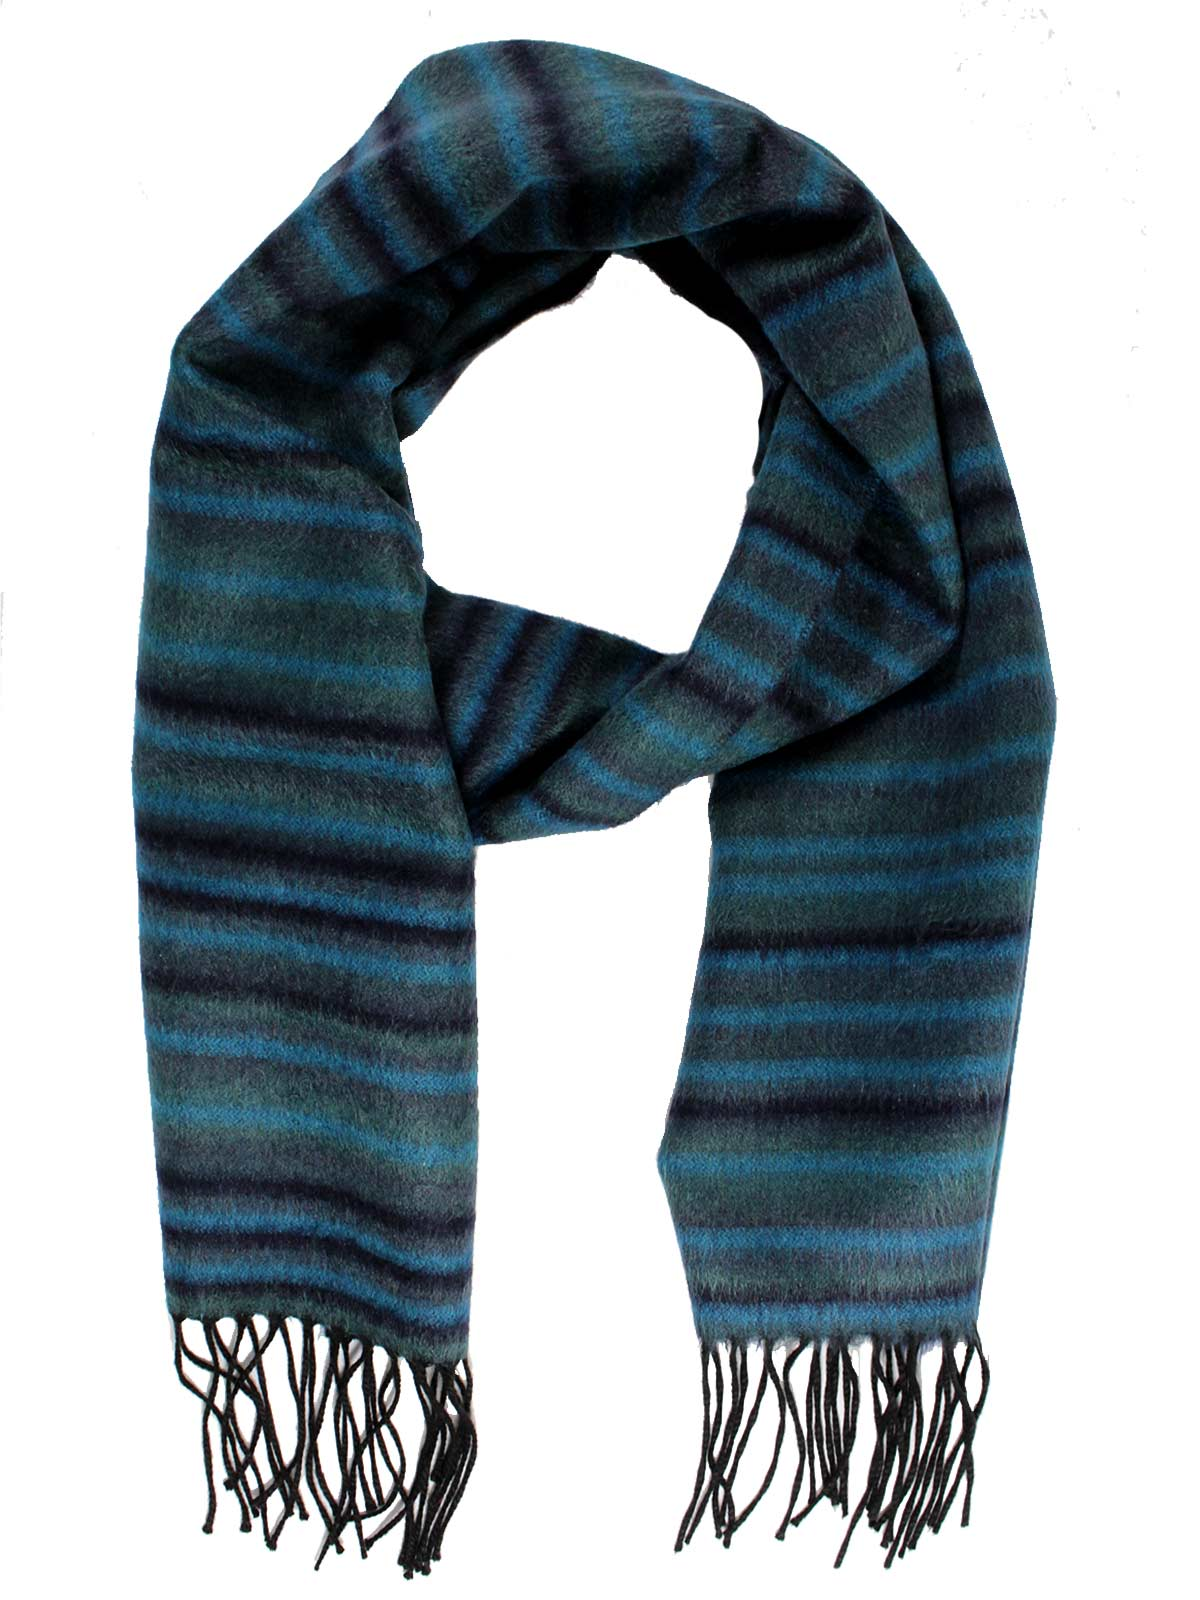 a3f6de5d7 Canali Scarf Navy Teal Gray Stripes Reversible Cashmere Silk Shawl ...